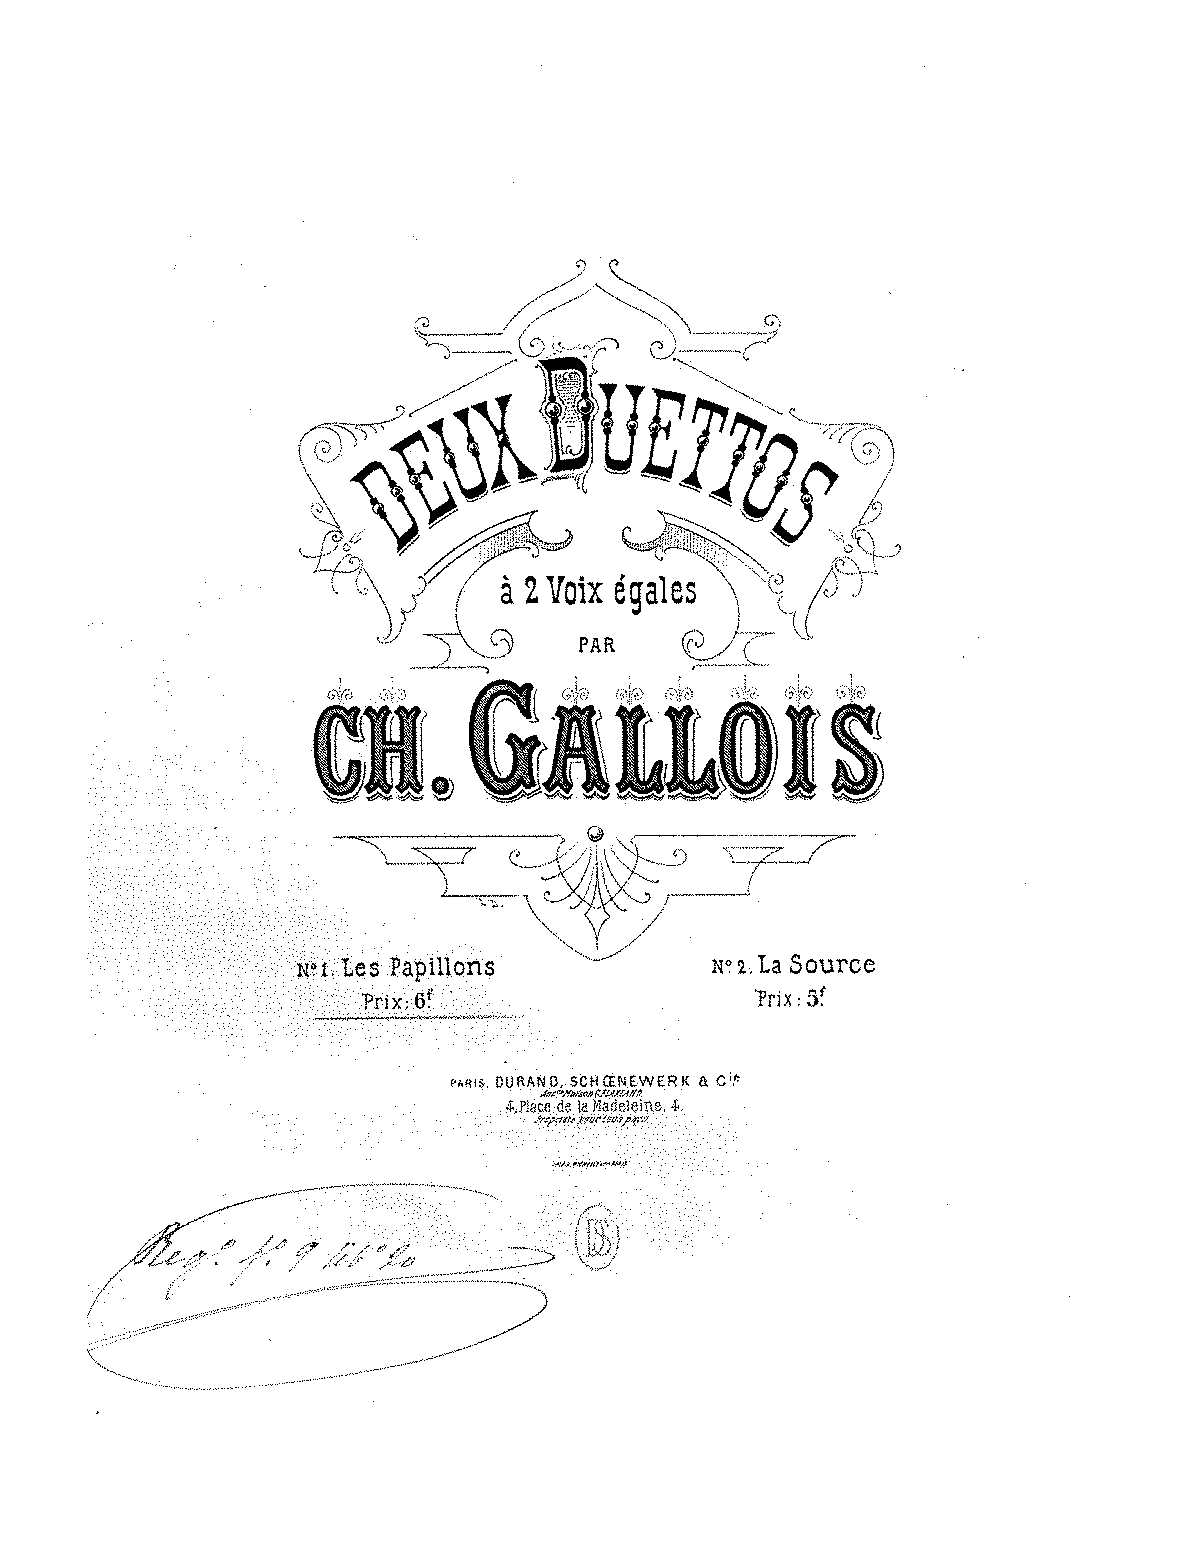 2 Duettos (Gallois, Charles) - IMSLP/Petrucci Music Library: Free